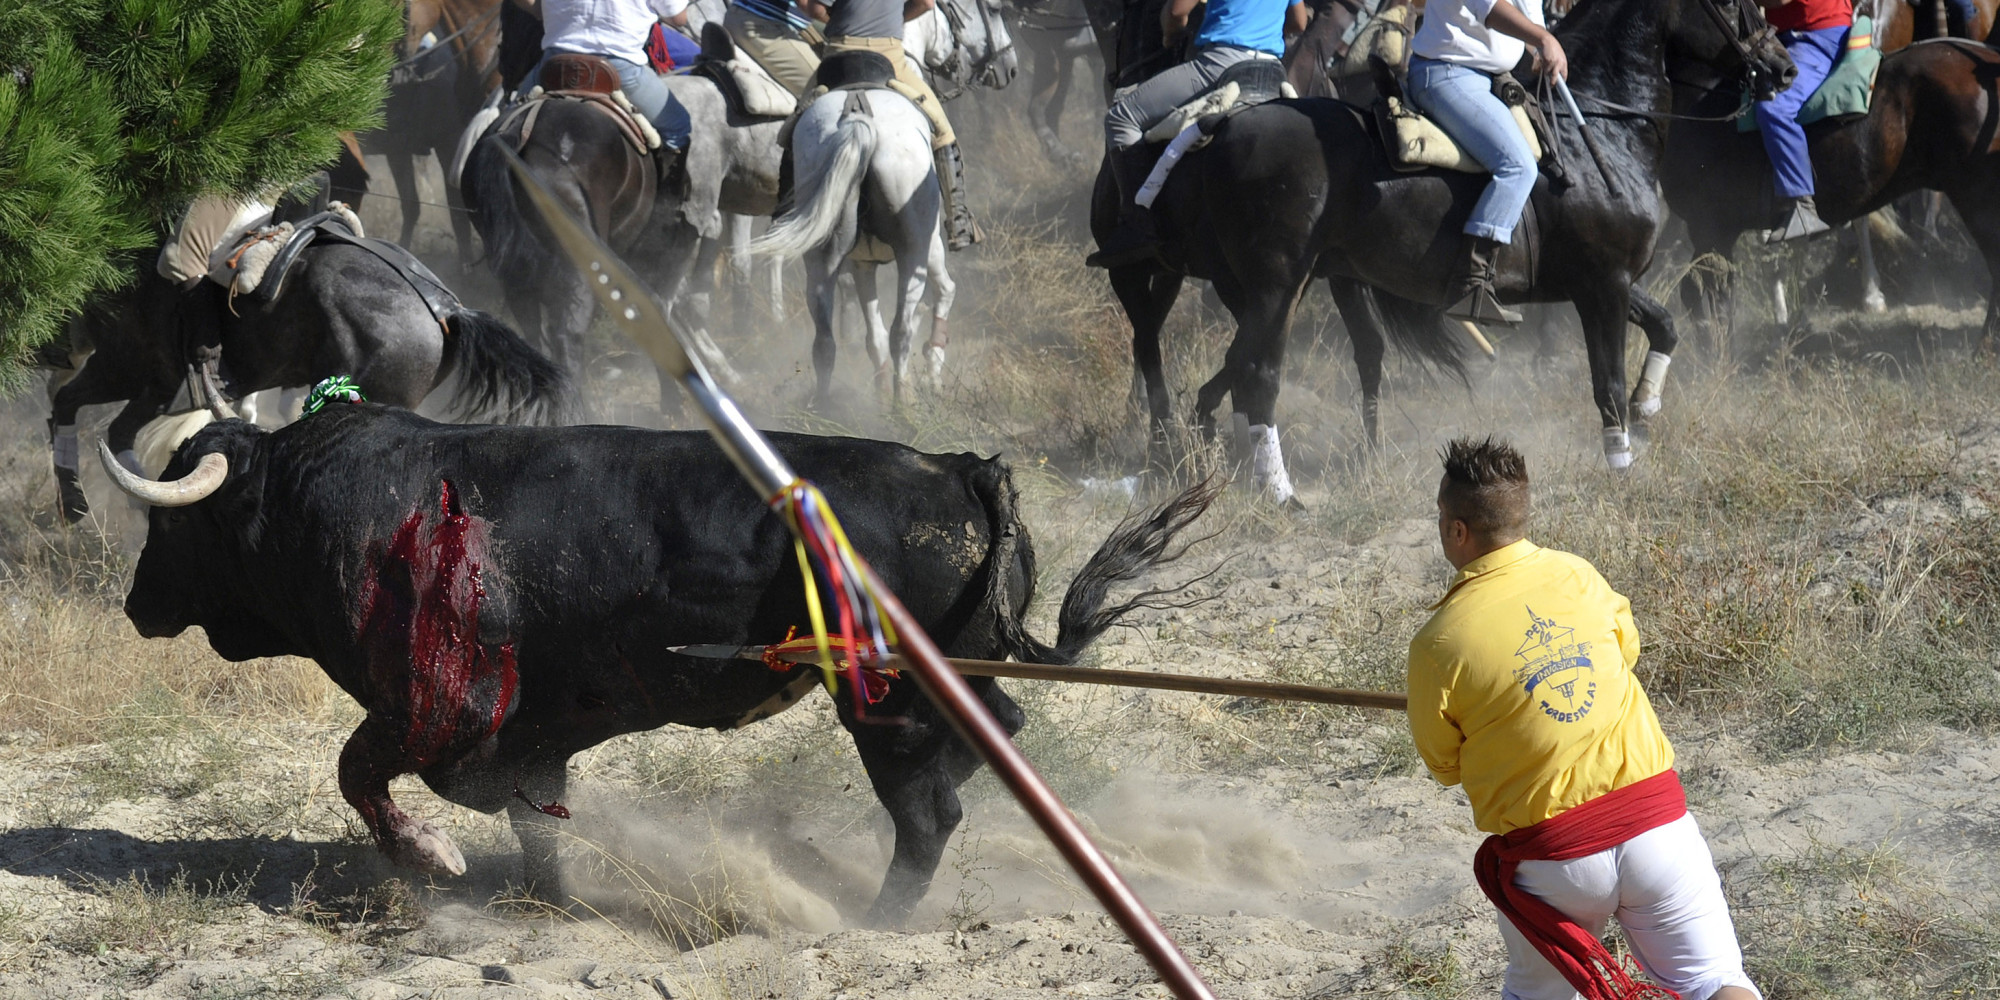 A bull is surrounded by men with spears during the 'Toro de la Vega' bull spearing fiesta in Tordesillas, Tuesday, Sept. 13, 2011.